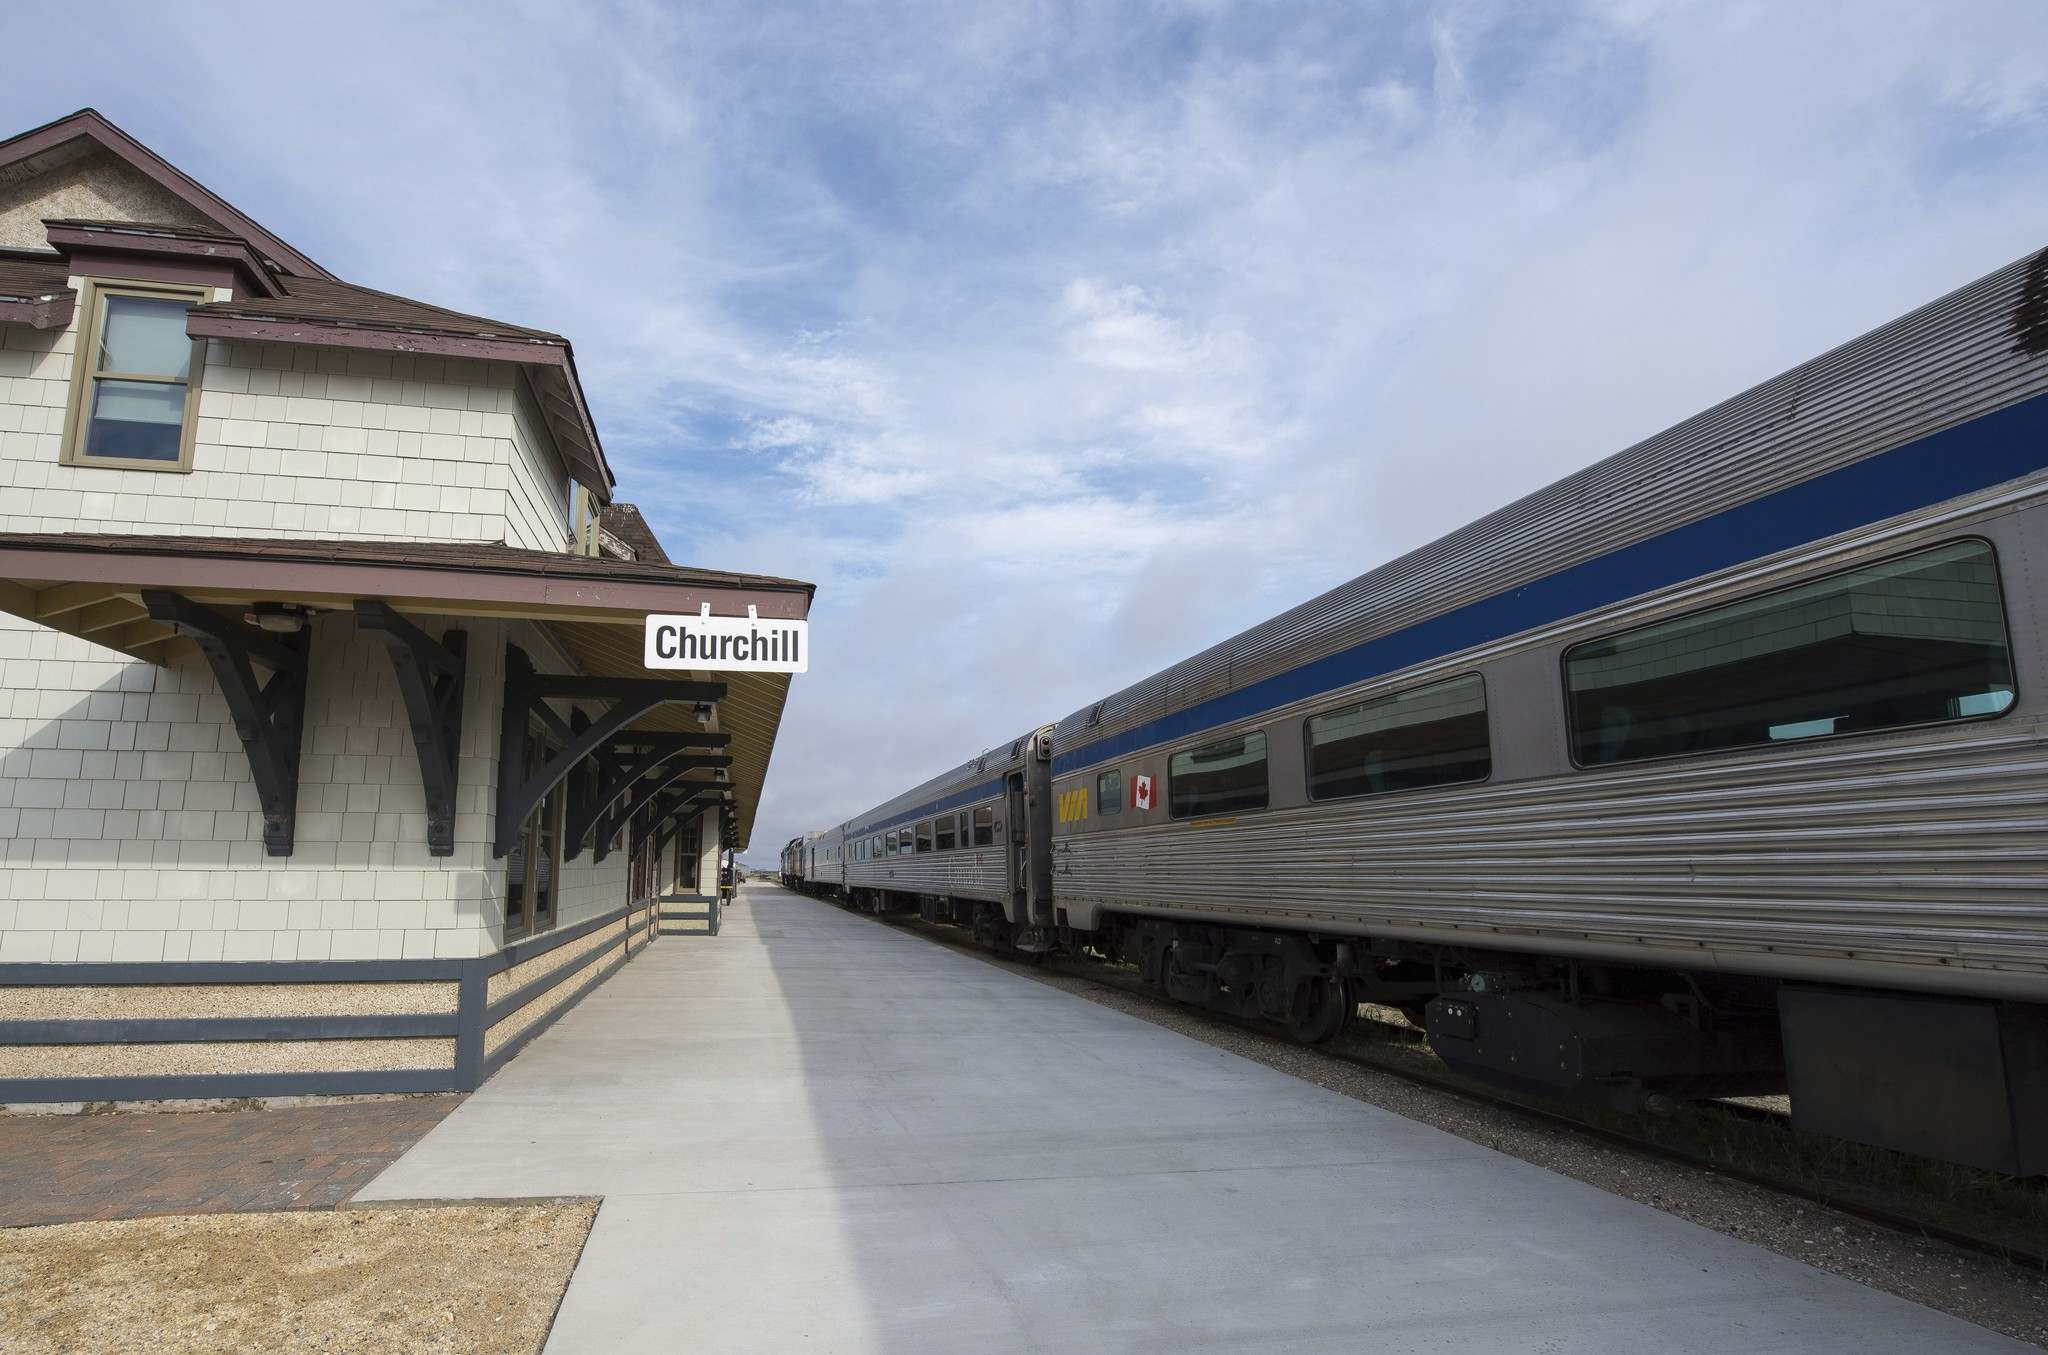 A VIA Rail train sits idle at the train station in Churchill, Man., on Thursday, June 22, 2017. THE CANADIAN PRESS/Alex de Vries</p>